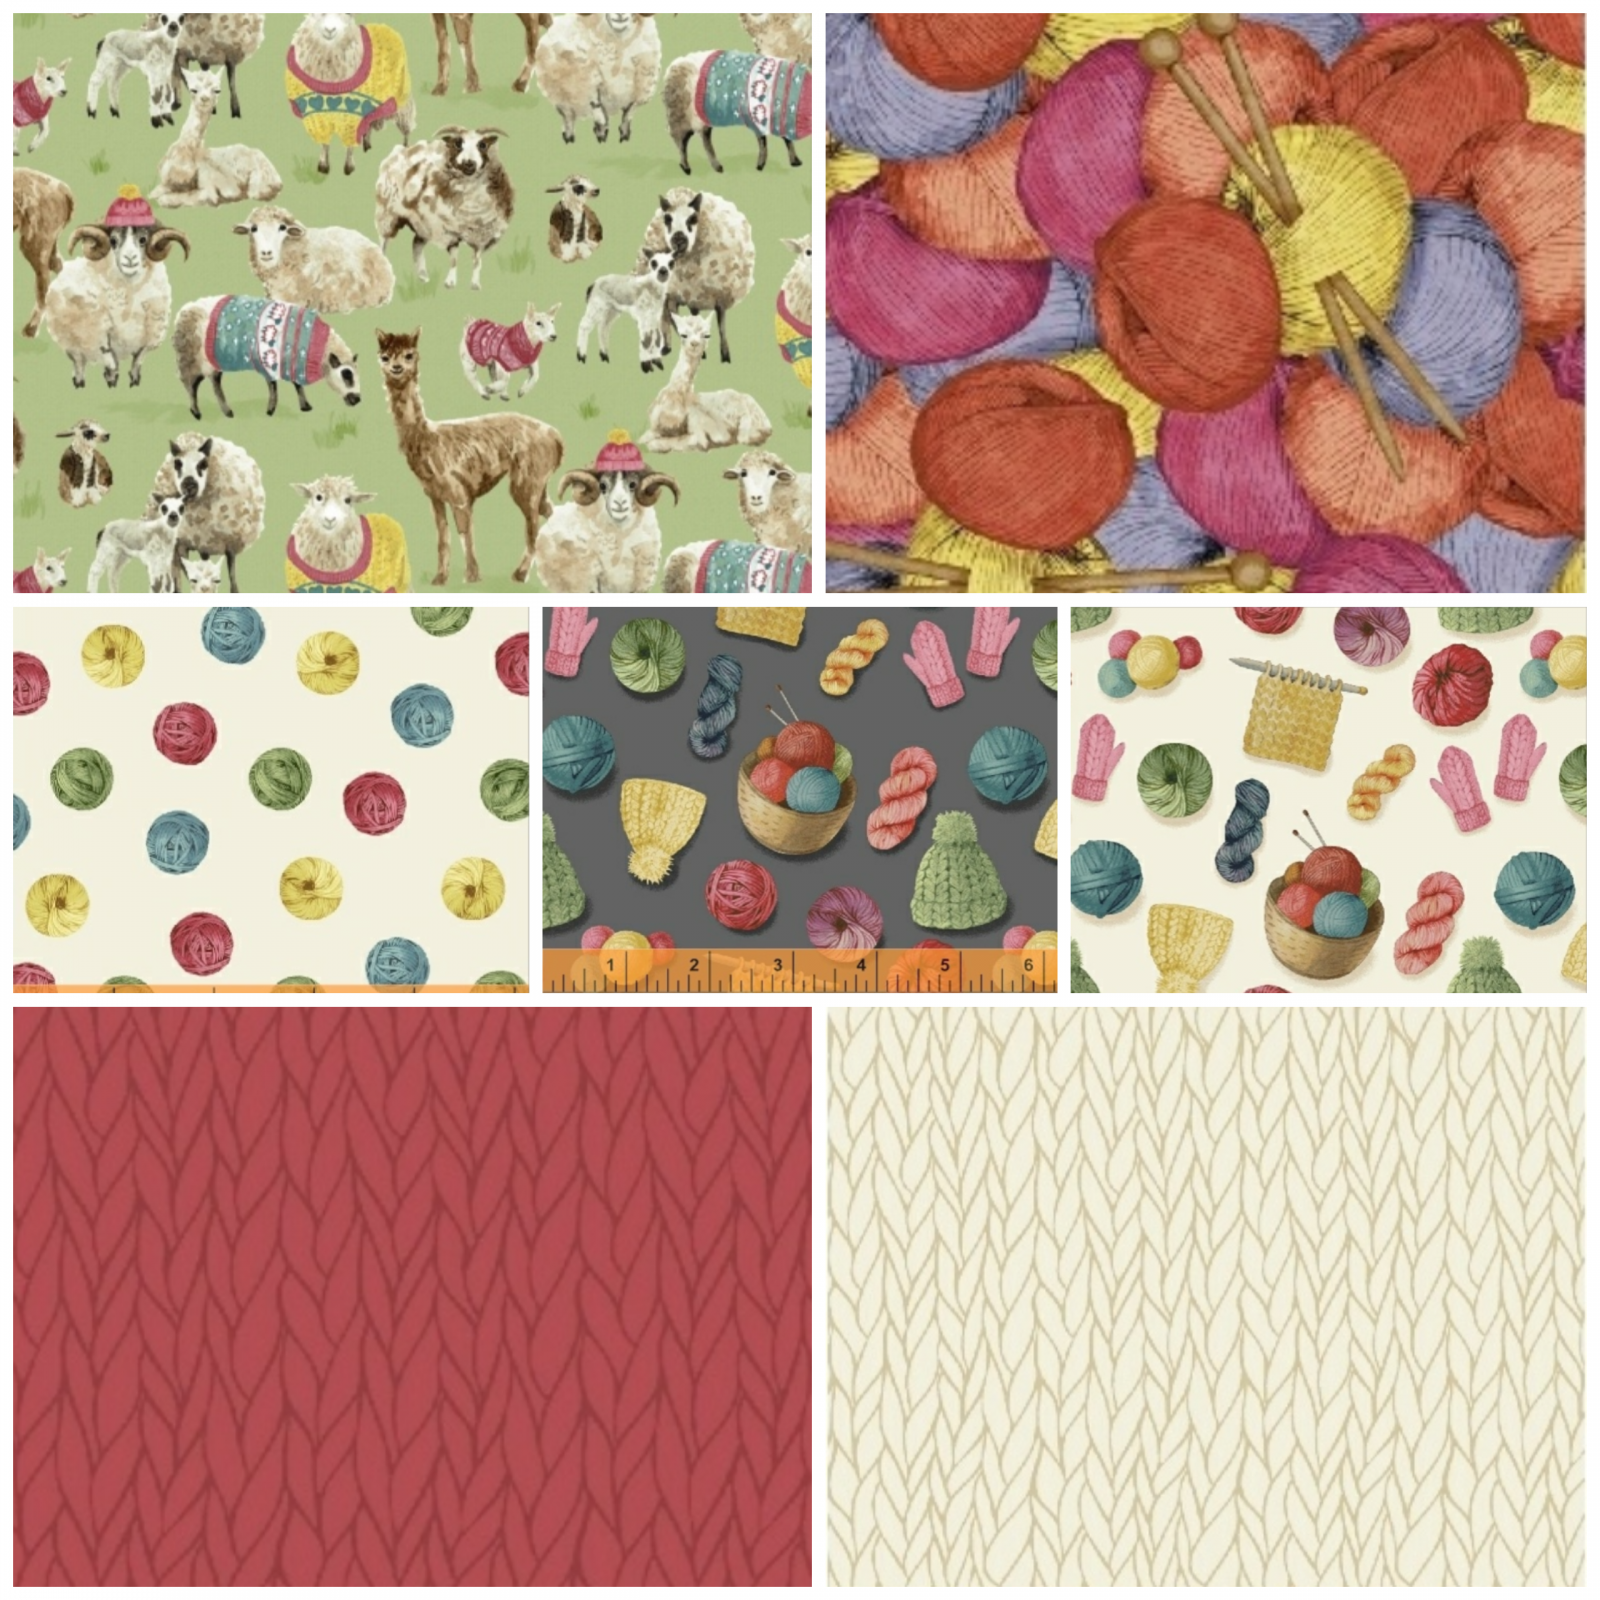 Knit N Purl Curated Fat Quarter Bundle - Includes 7 Fat Quarters - by Whistler Studios for Windham Fabrics